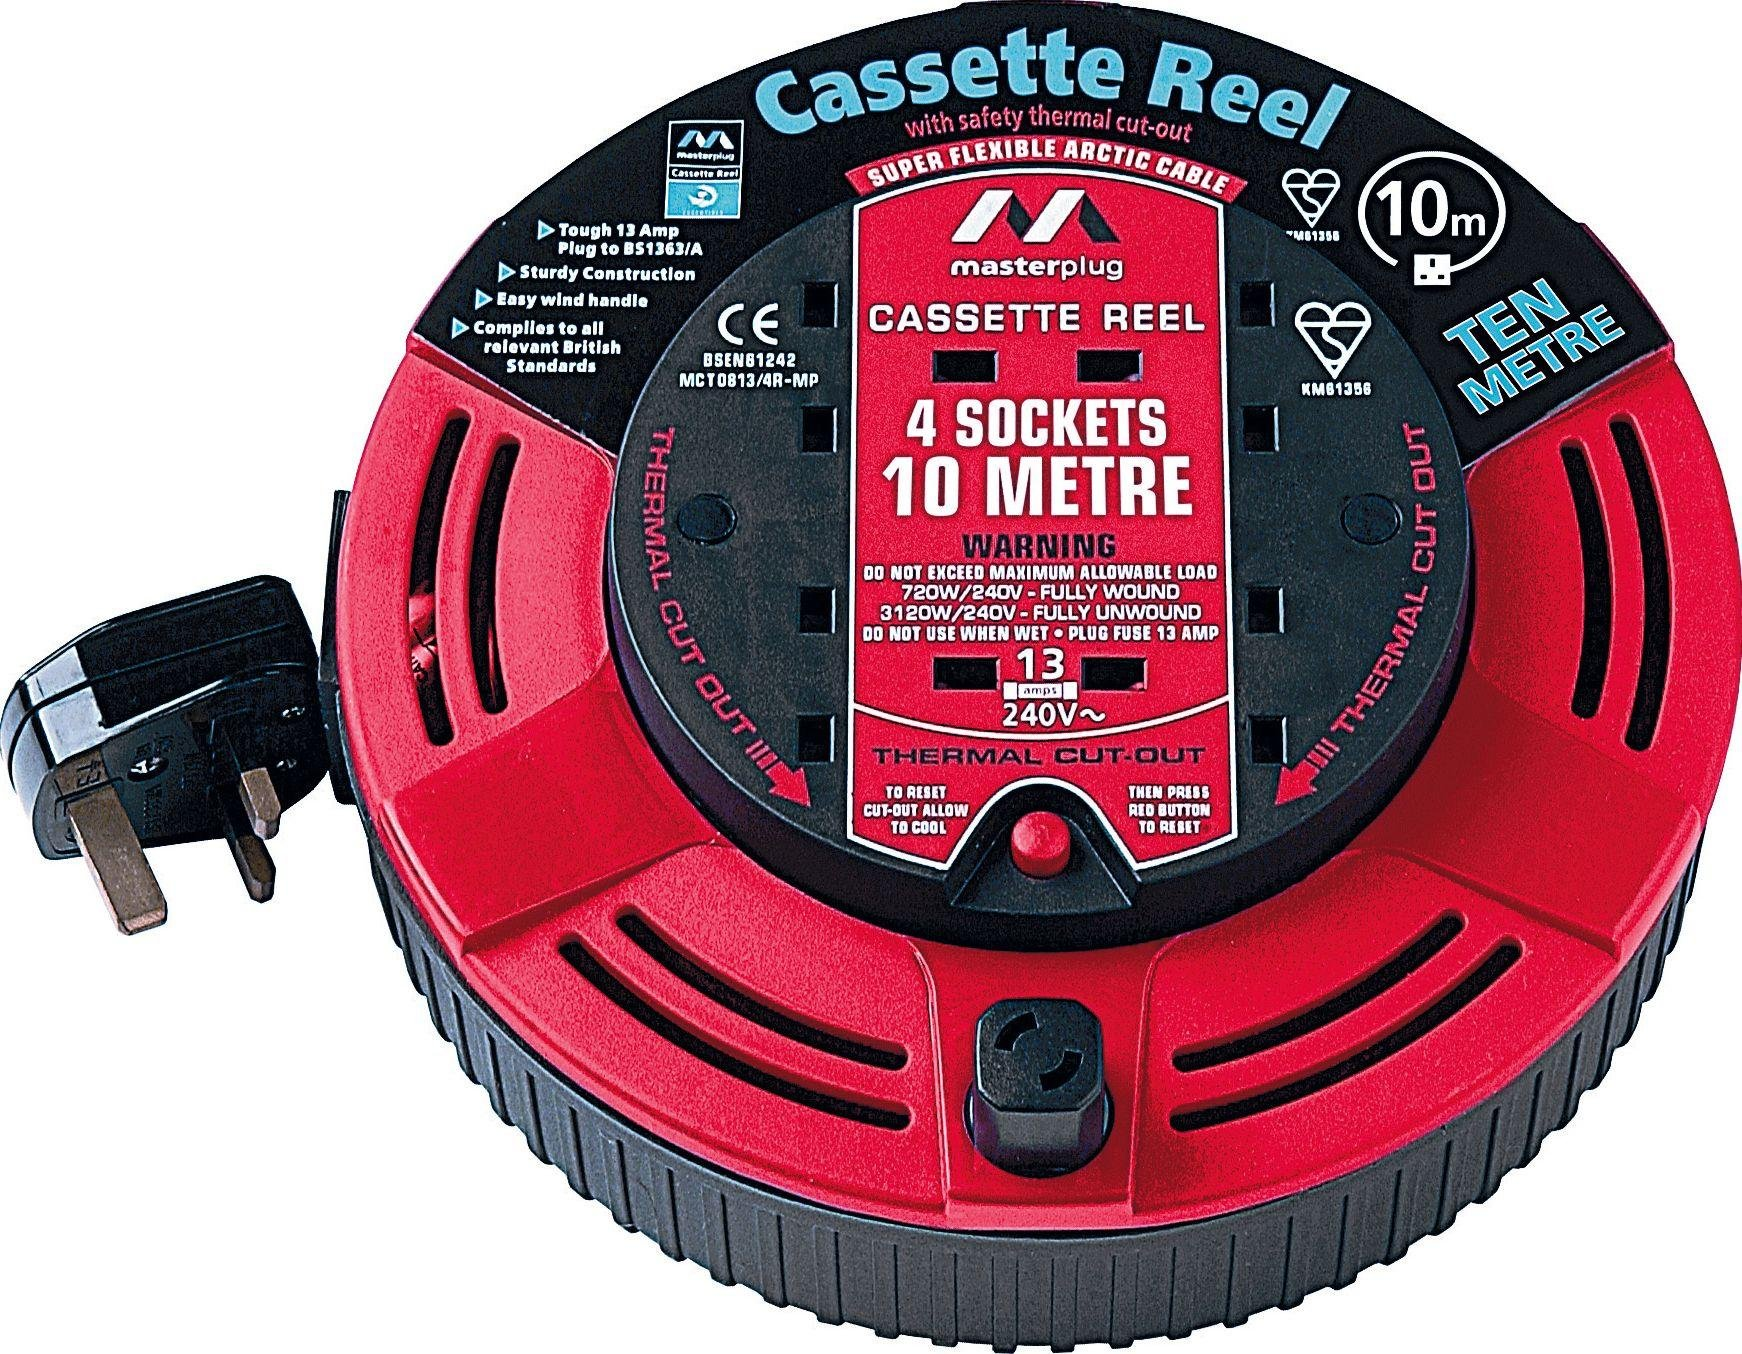 Masterplug - 4 Socket Cable Reel - 10m